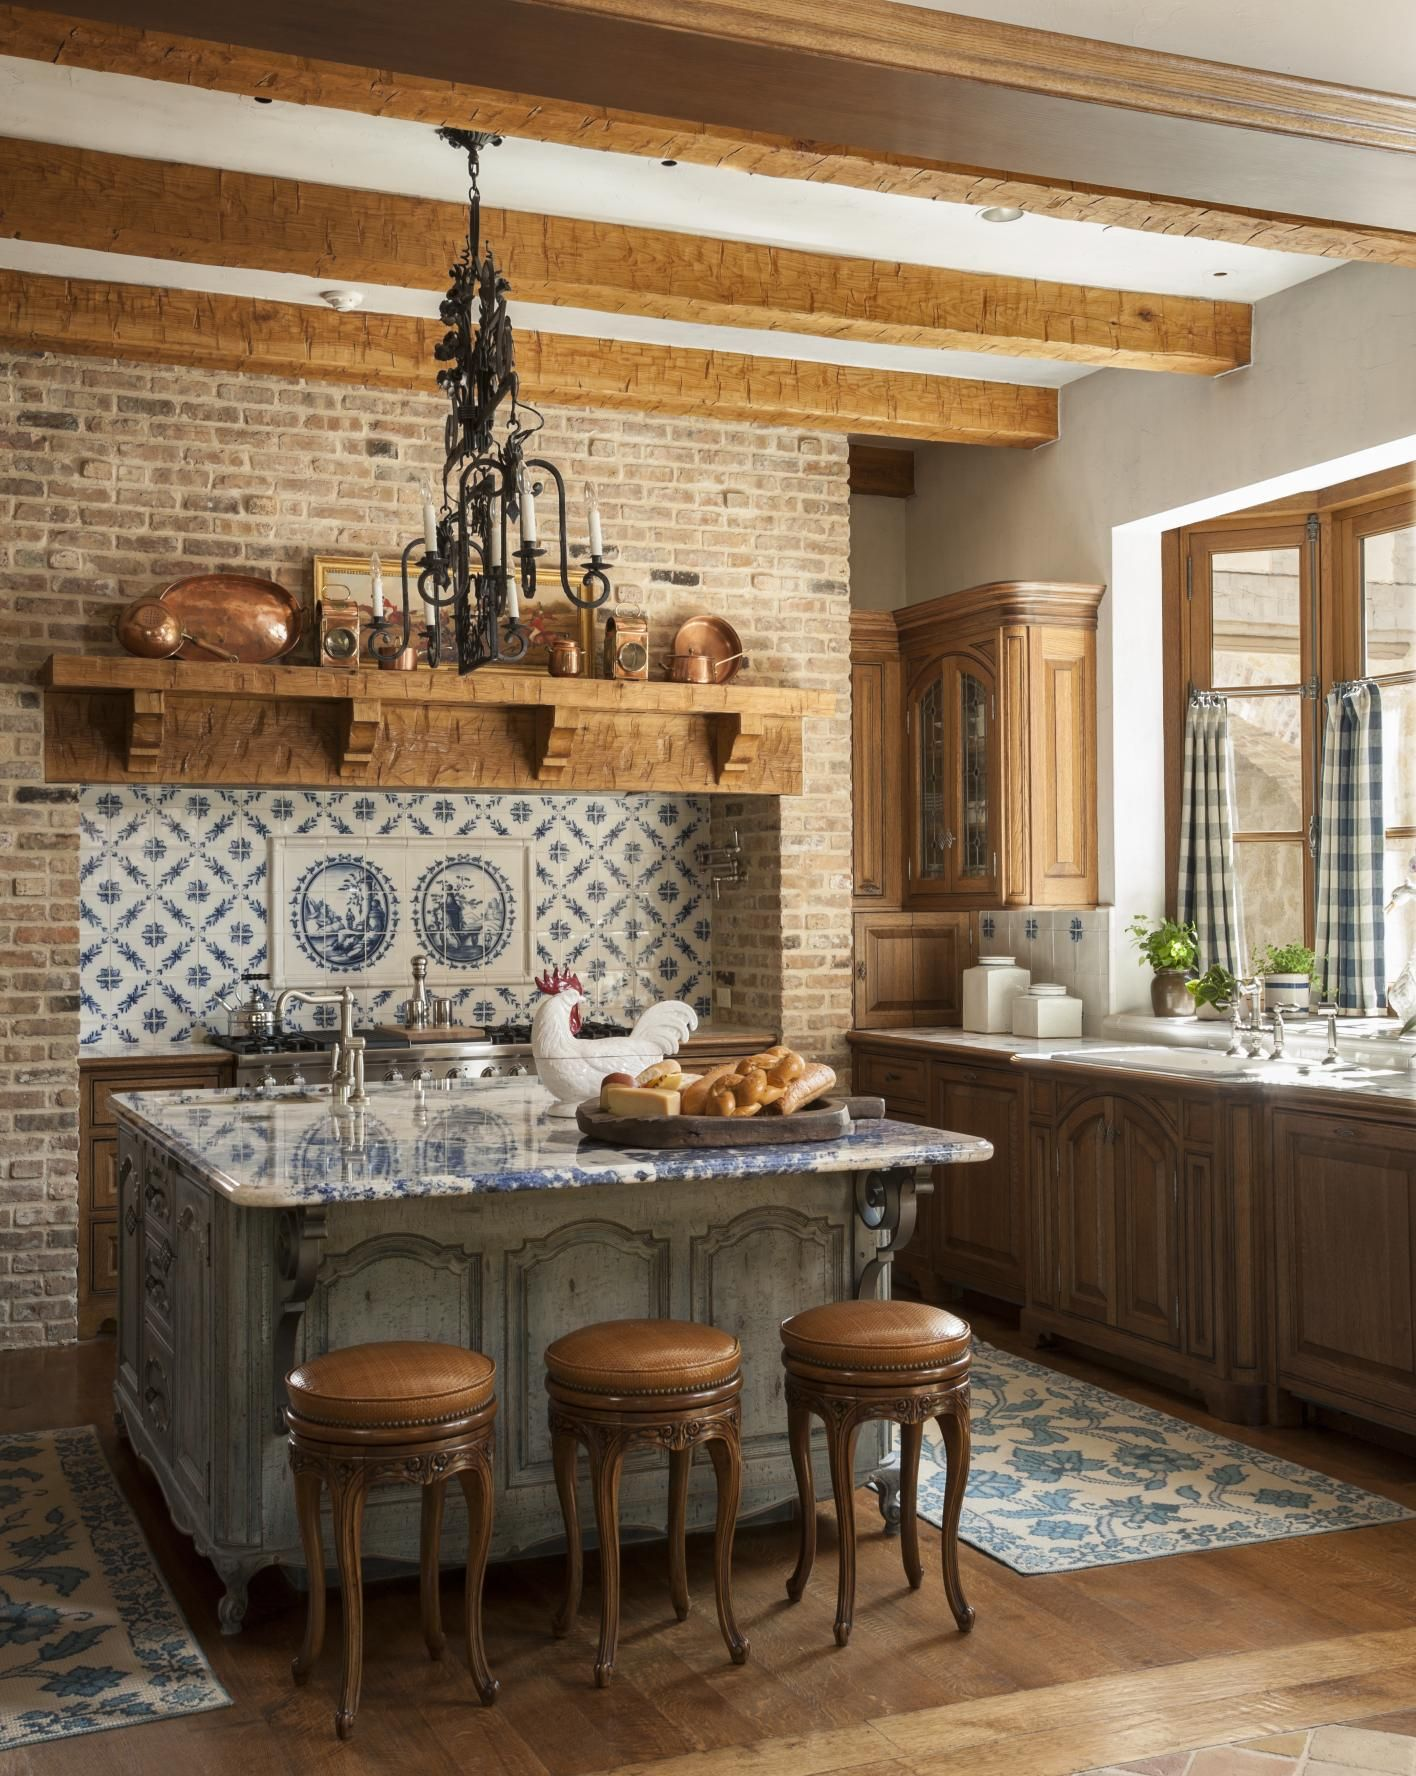 Beautiful Tile Work And Blue Bahia Granite Is Exquisite On The Island. Country  French Kitchens